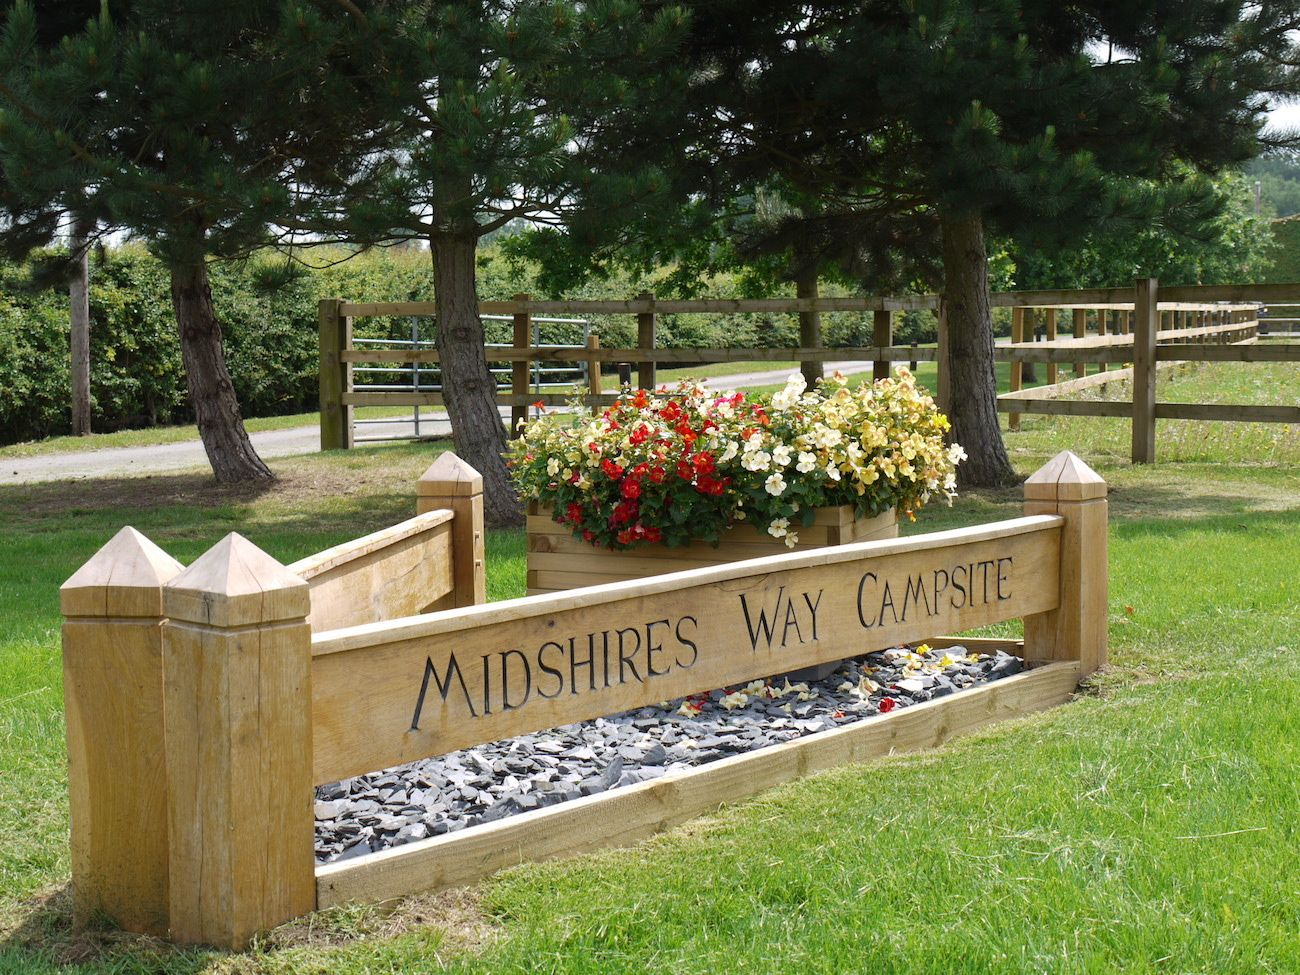 Entrance to Midshires Way Campsite